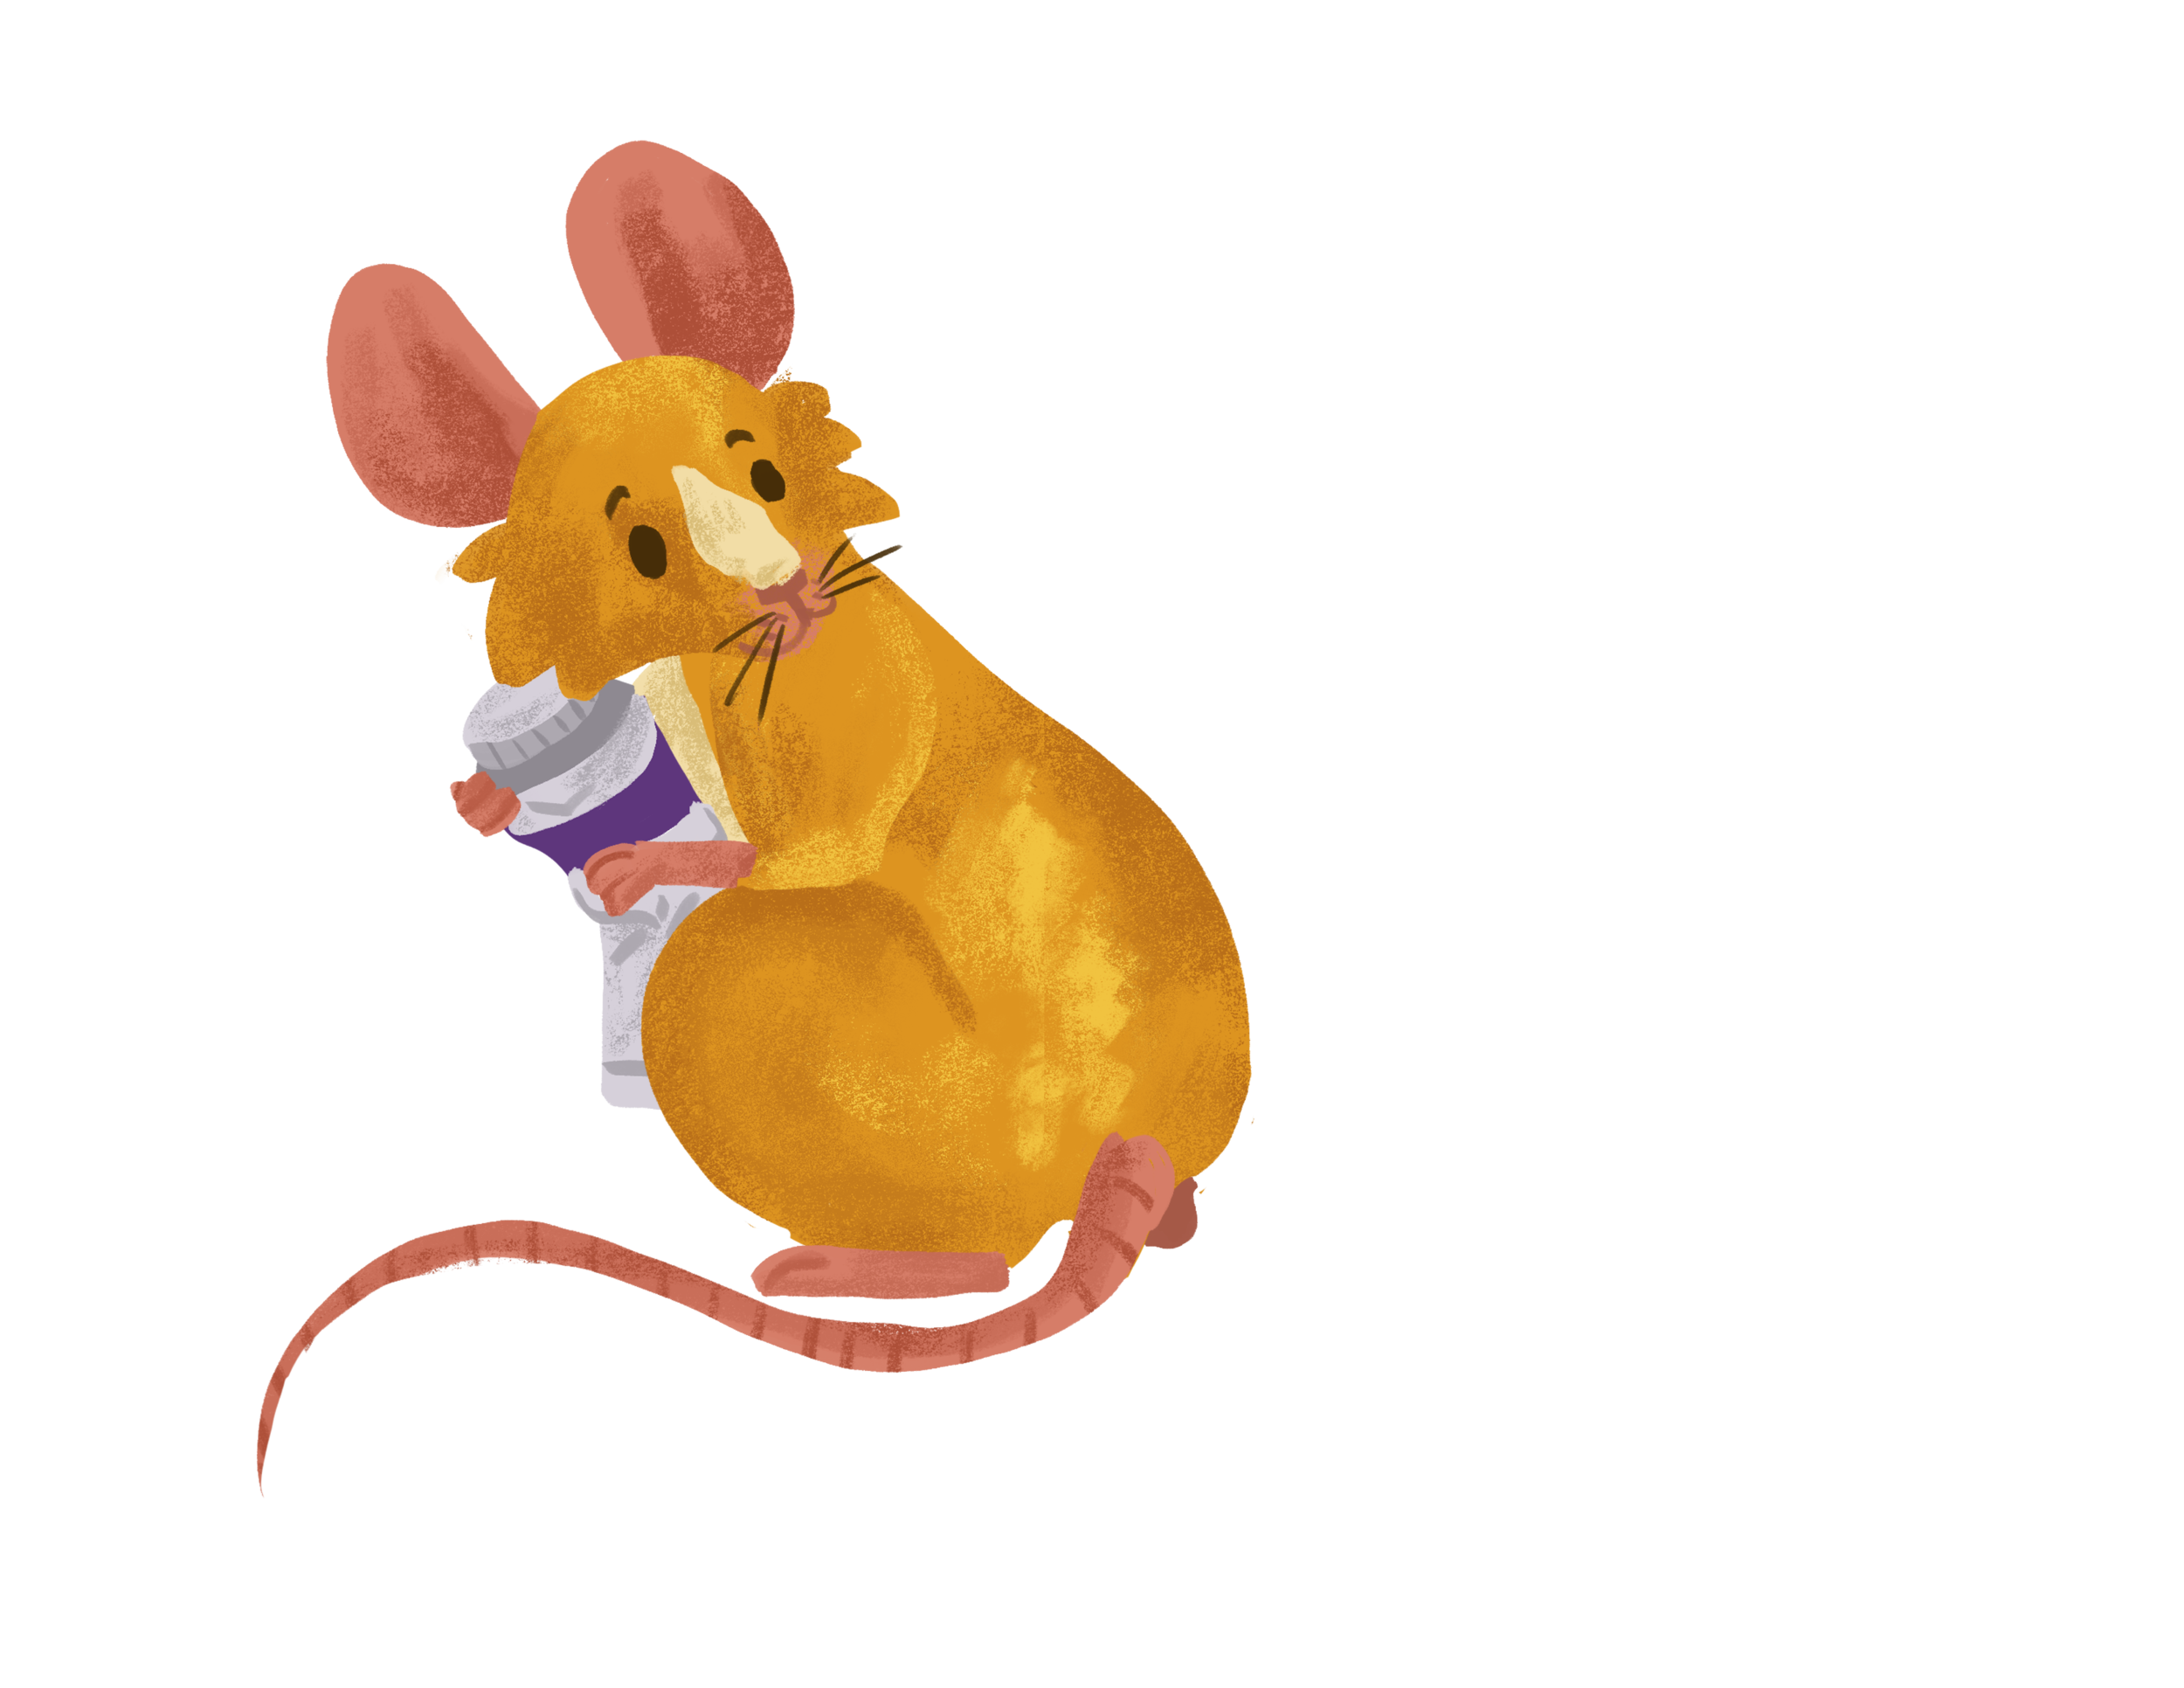 About Me - I have kinda an obsession with my mouse Gus Gus